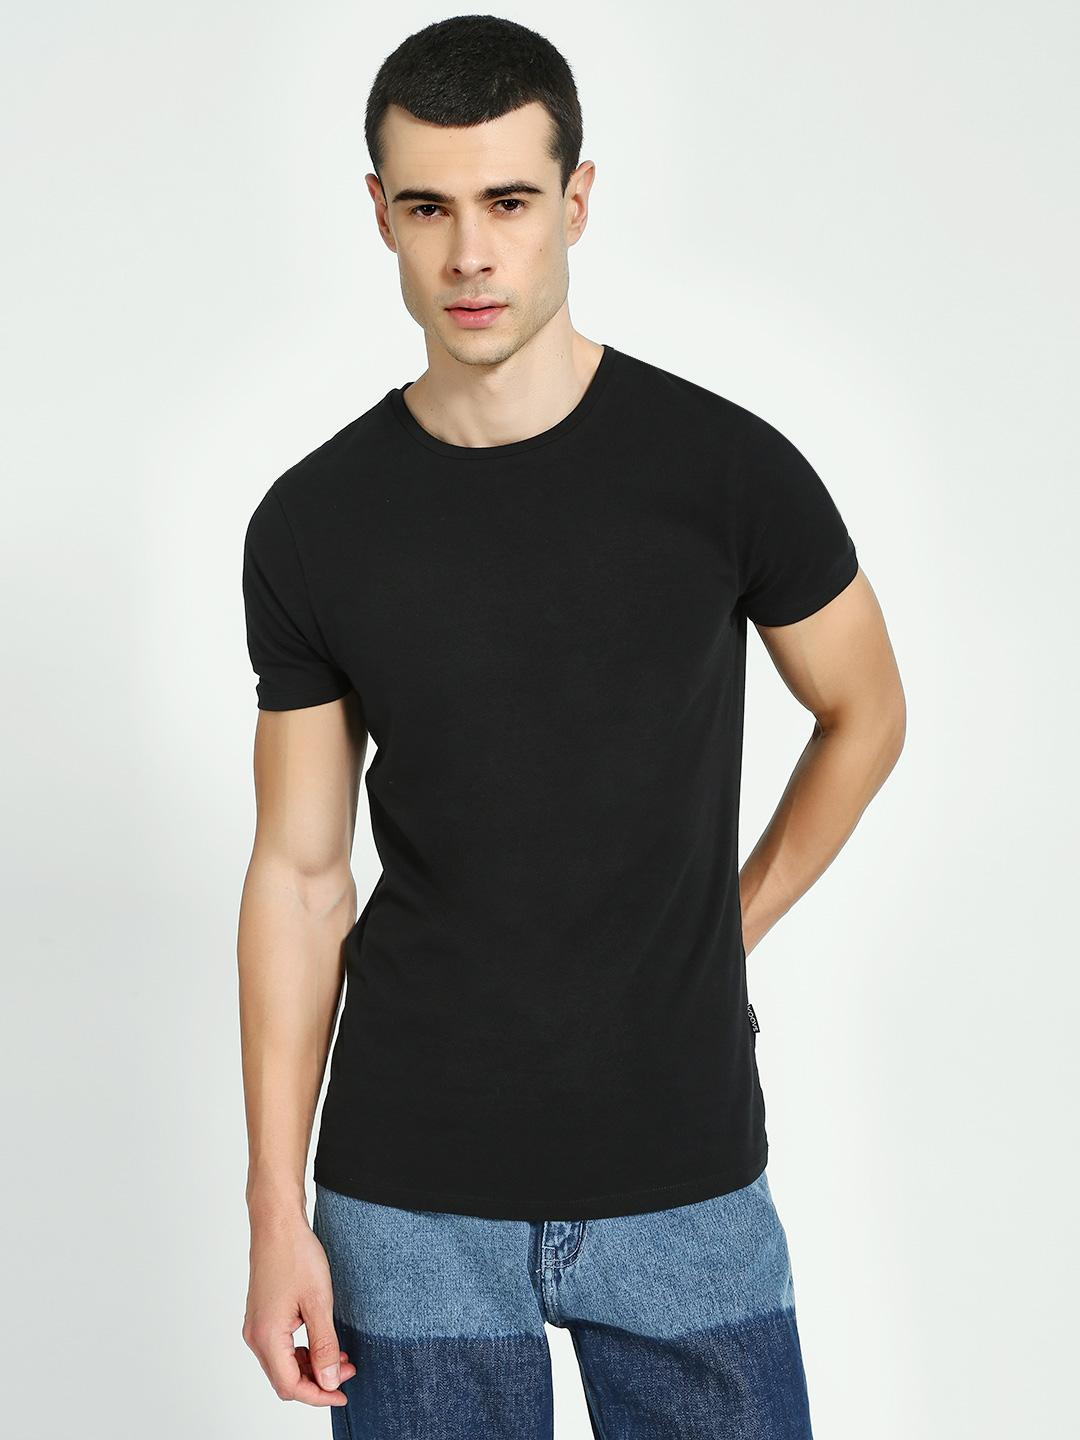 KOOVS Black Muscle Fit Crew Neck T-Shirt 1